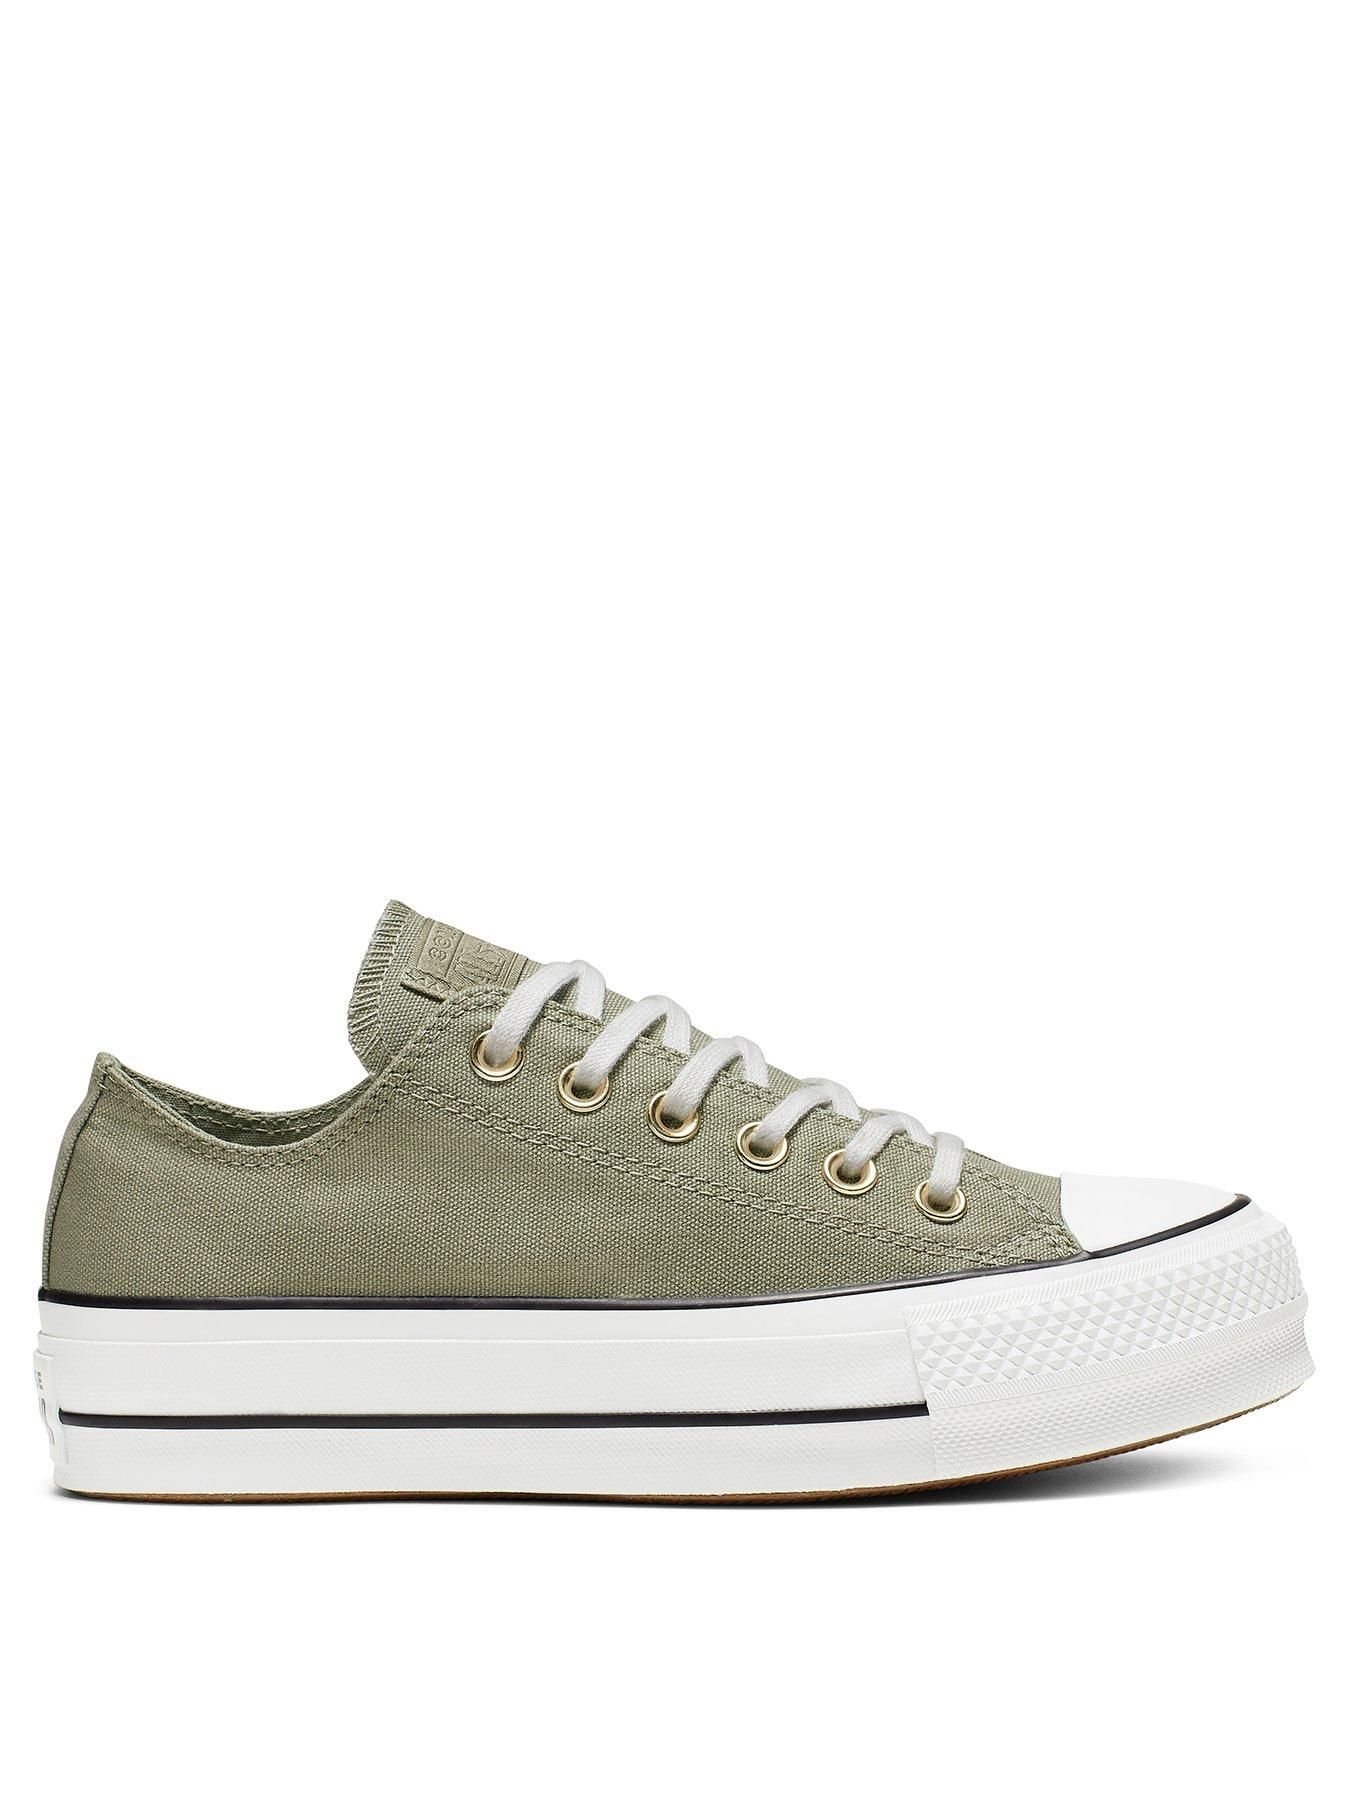 converse all star ox platform canvas